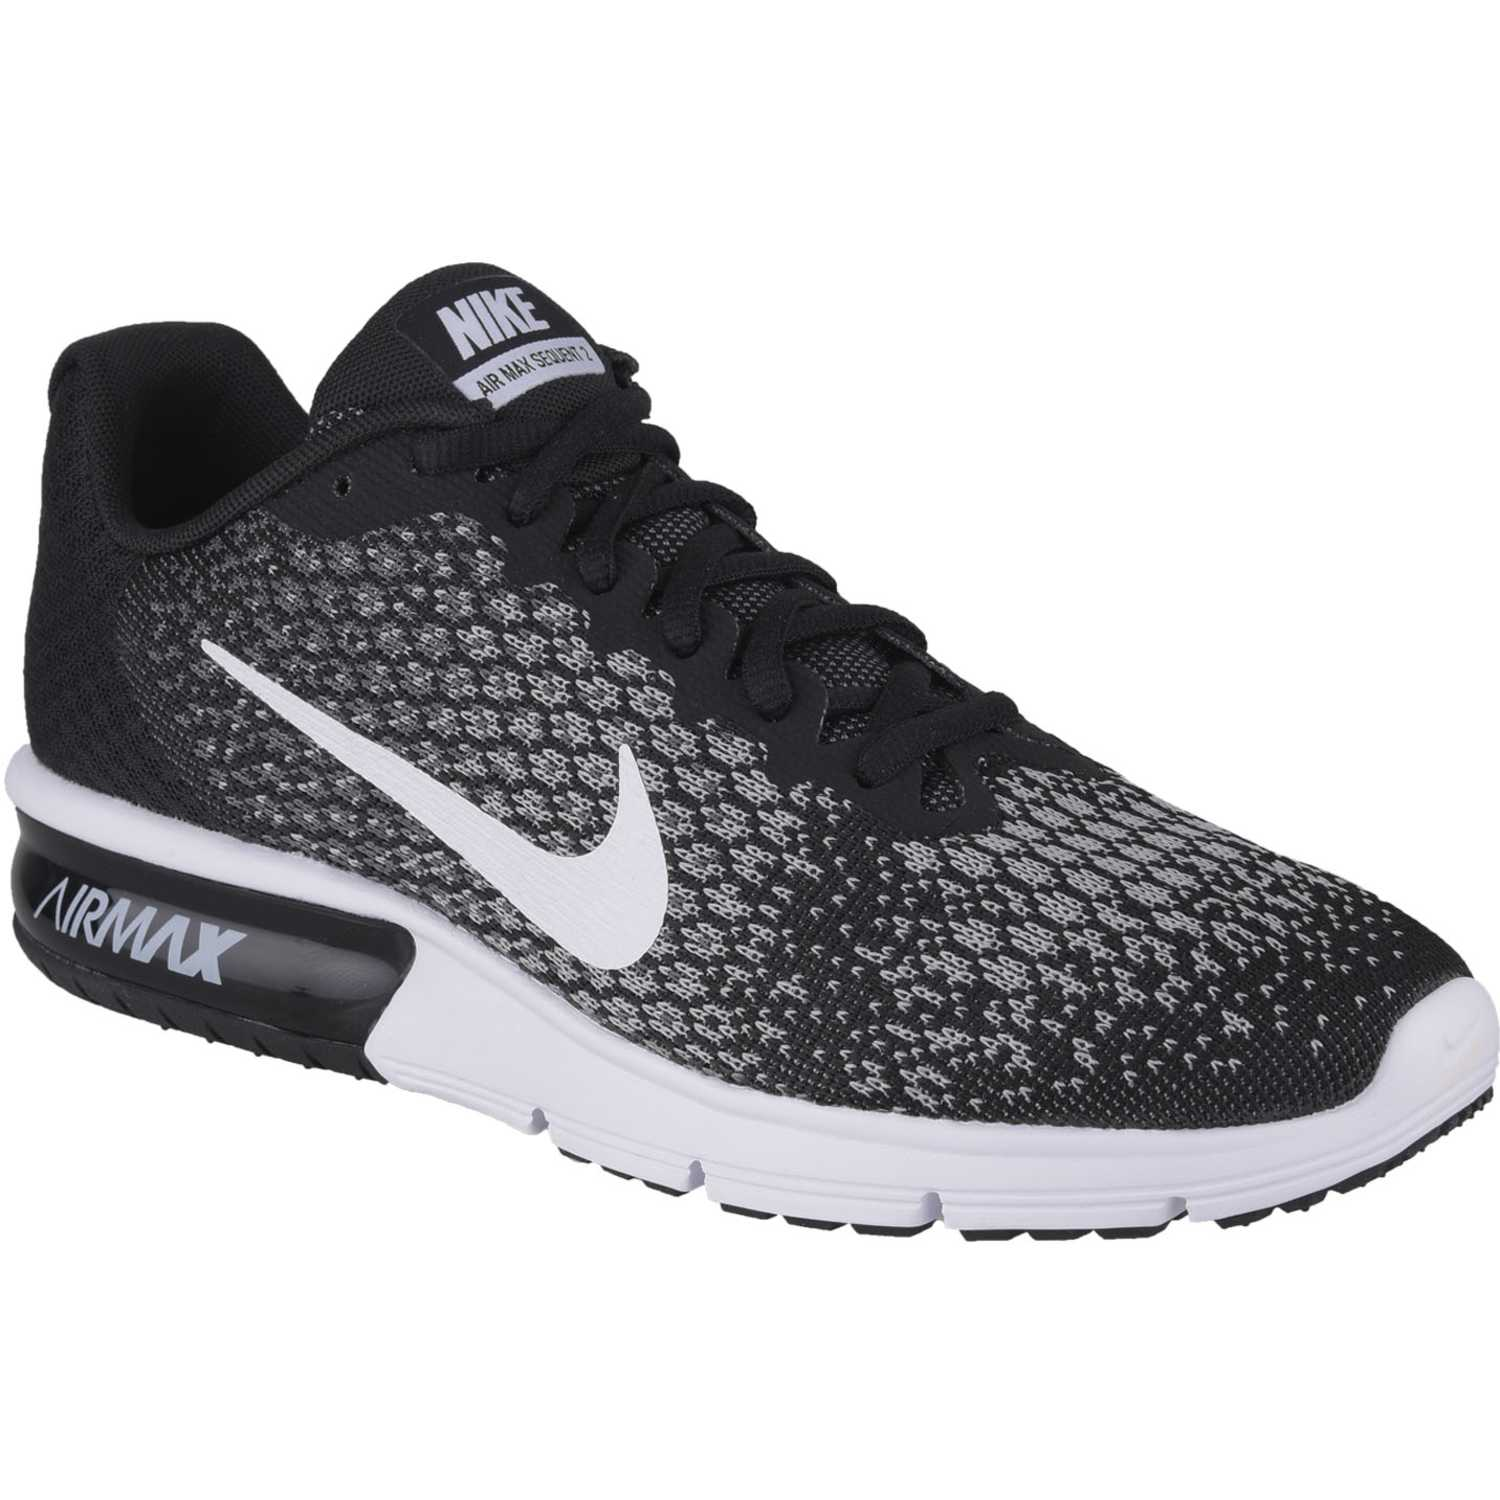 Nike air max sequent 2 Negro blanco |